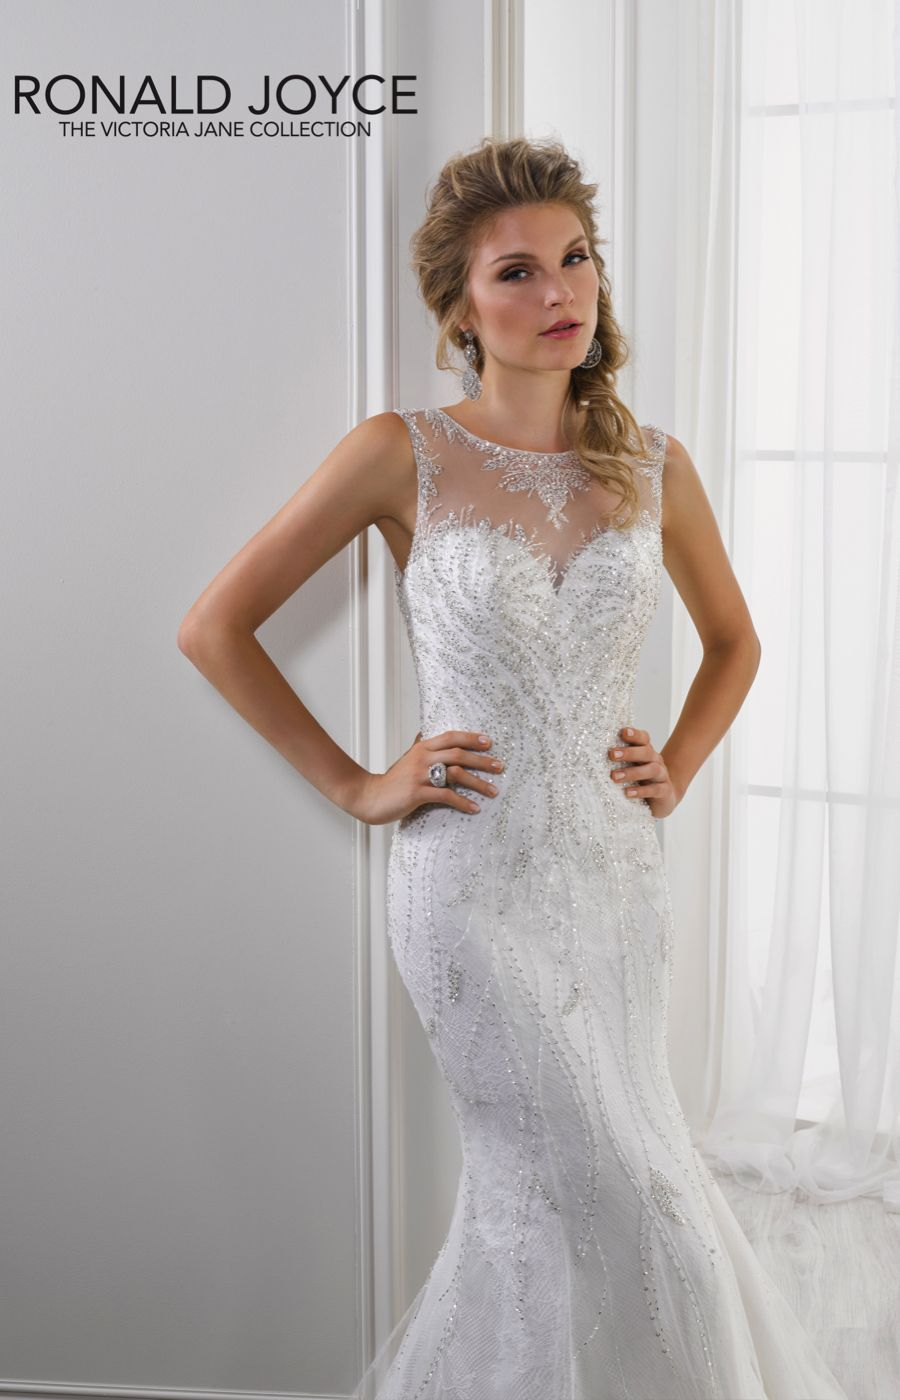 ae0fa6c9180bc Sleeveless tulle over satin fishtail gown with all-over beading detail,  illusion neckline and illusion back. #wedding #dress